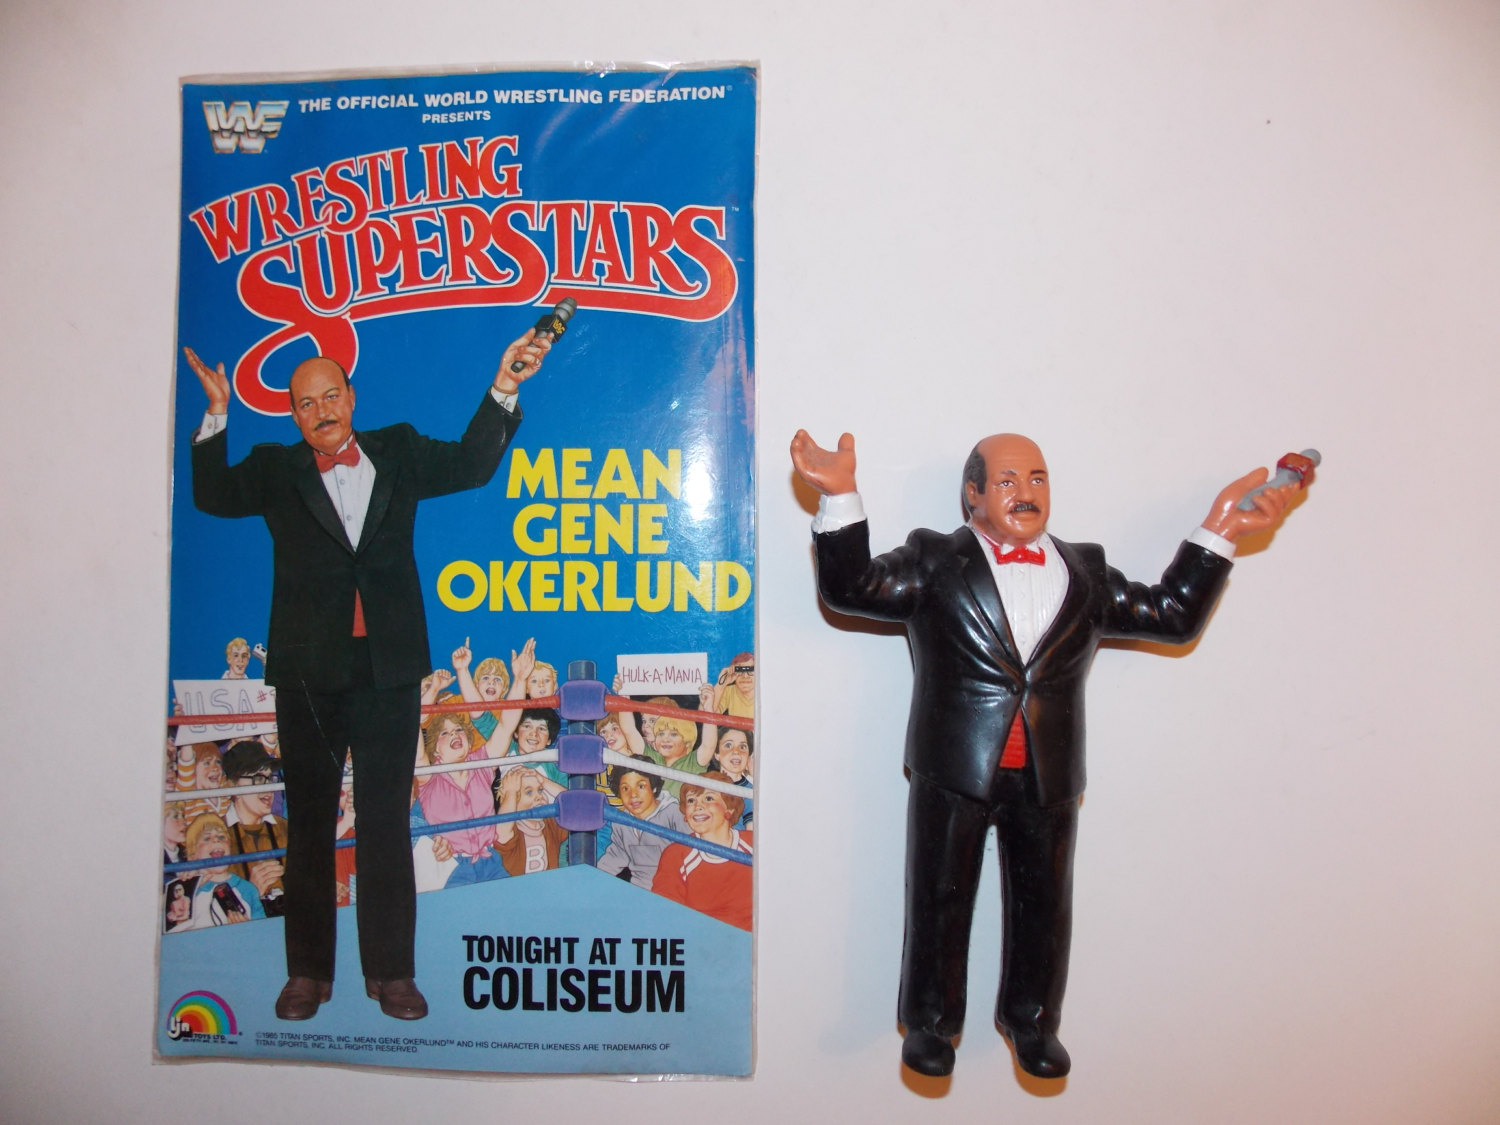 Mean Gene Oklerlund LJN figure  high resolution photo